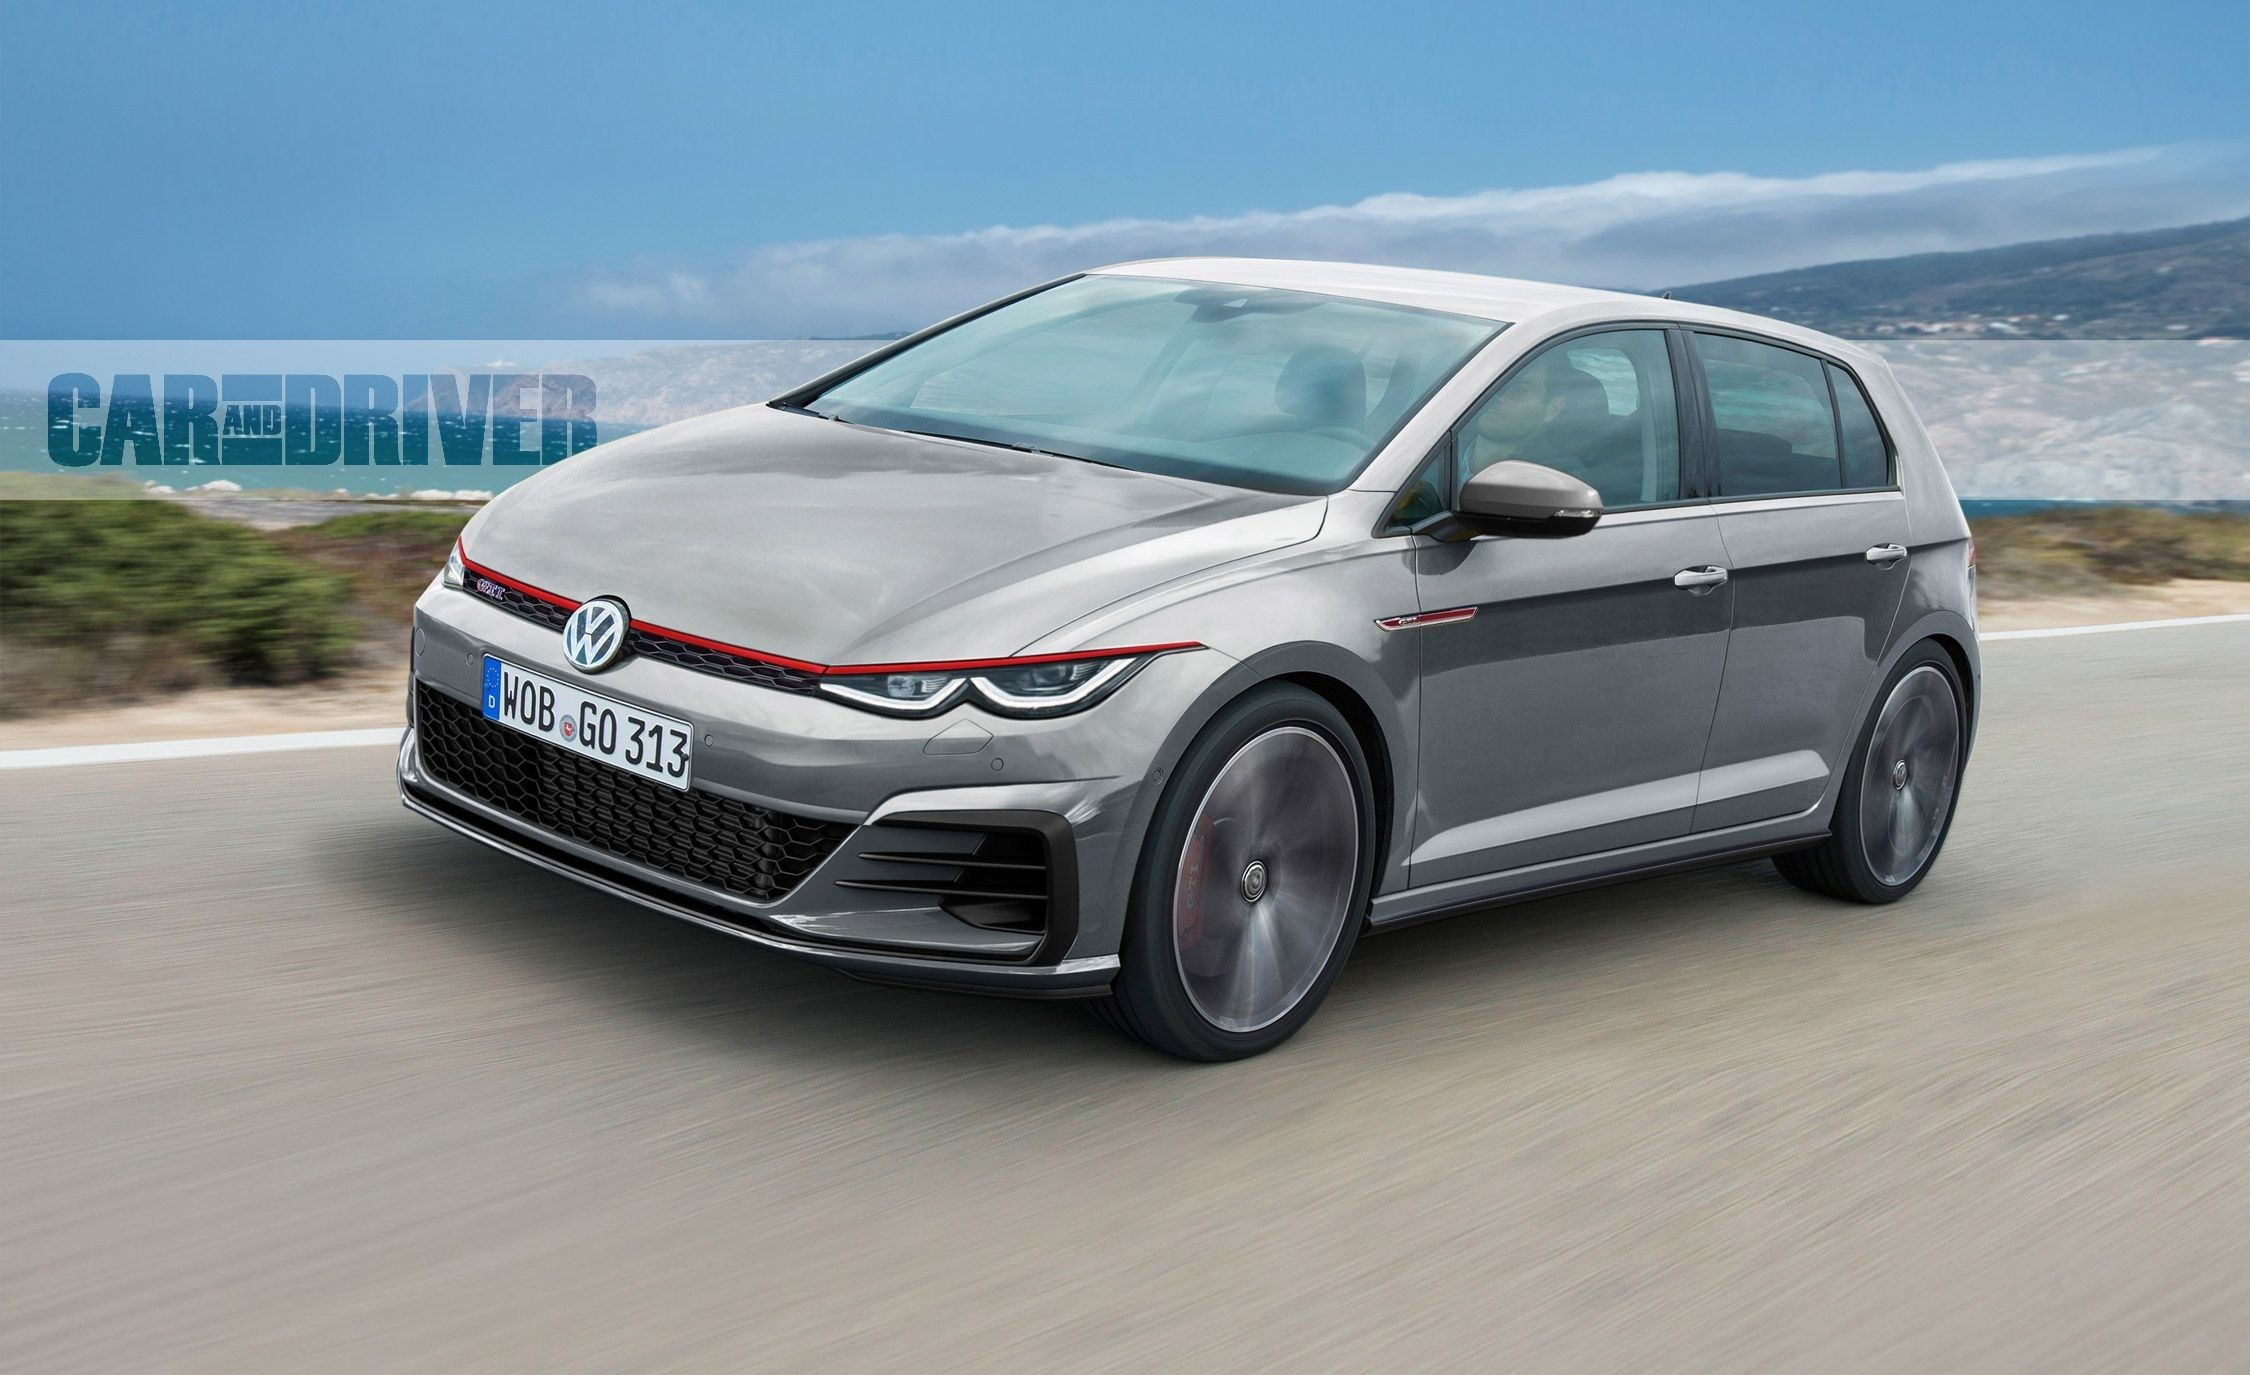 2019 Vw Golf R Usa Price And Release Date Volkswagen Volkswagen